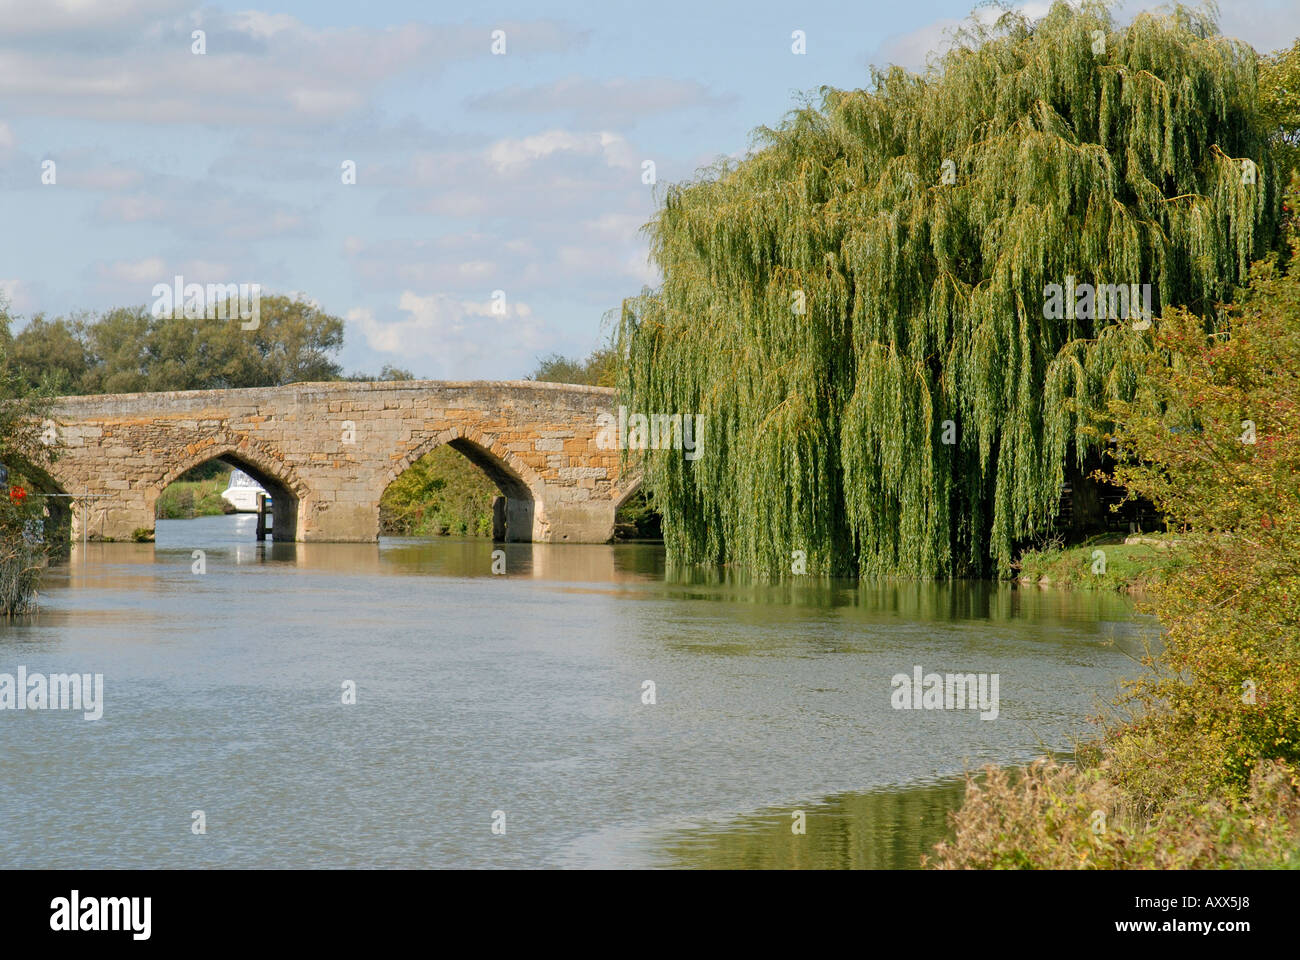 Ancient Bridge over the River Thames at Newbridge, Oxfordshire - Stock Image